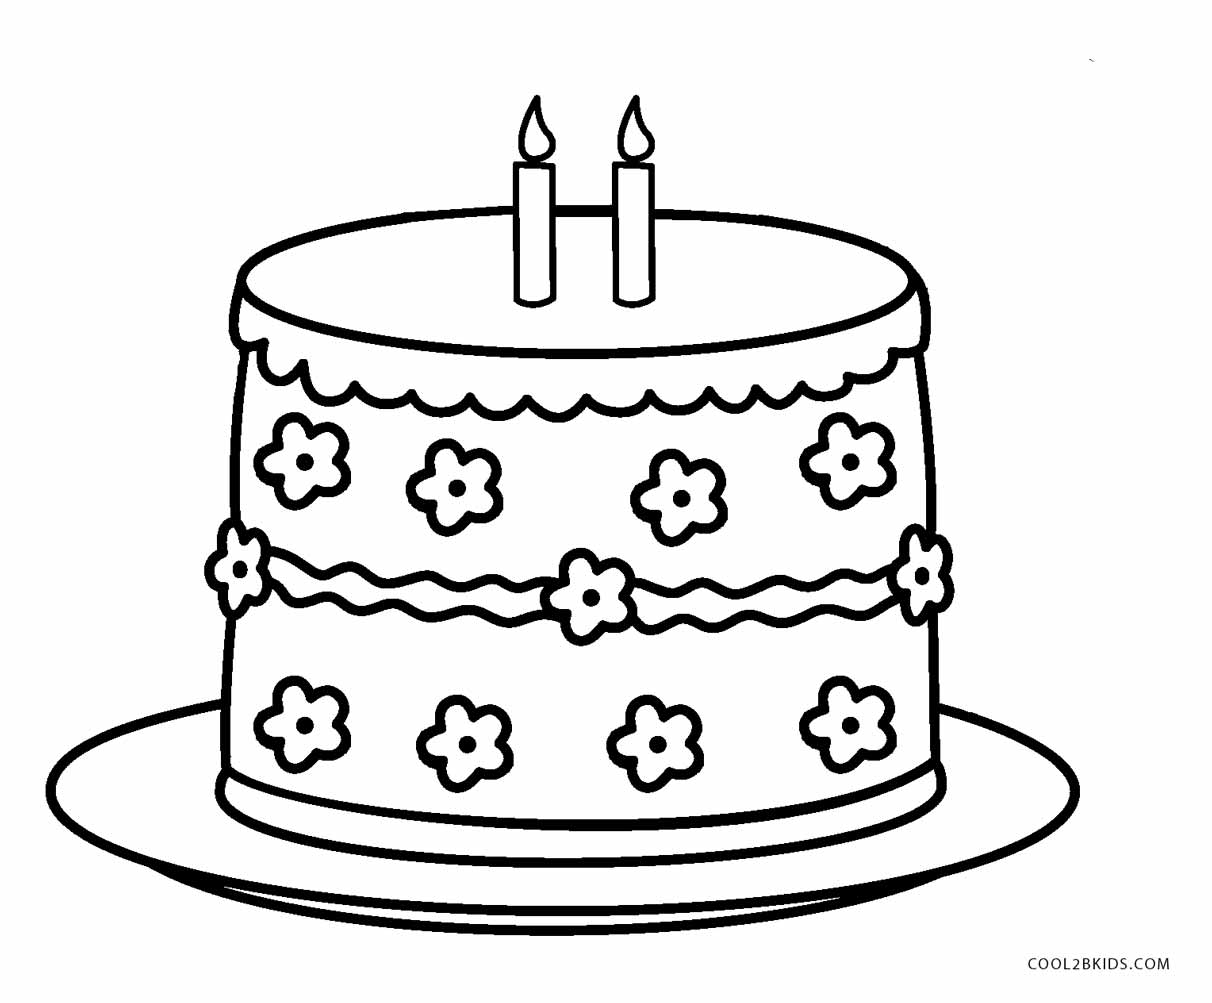 birthday cake coloring page ; free-printable-birthday-cake-coloring-pages-for-kids-cool2bkids-5a9c8822bc0d7